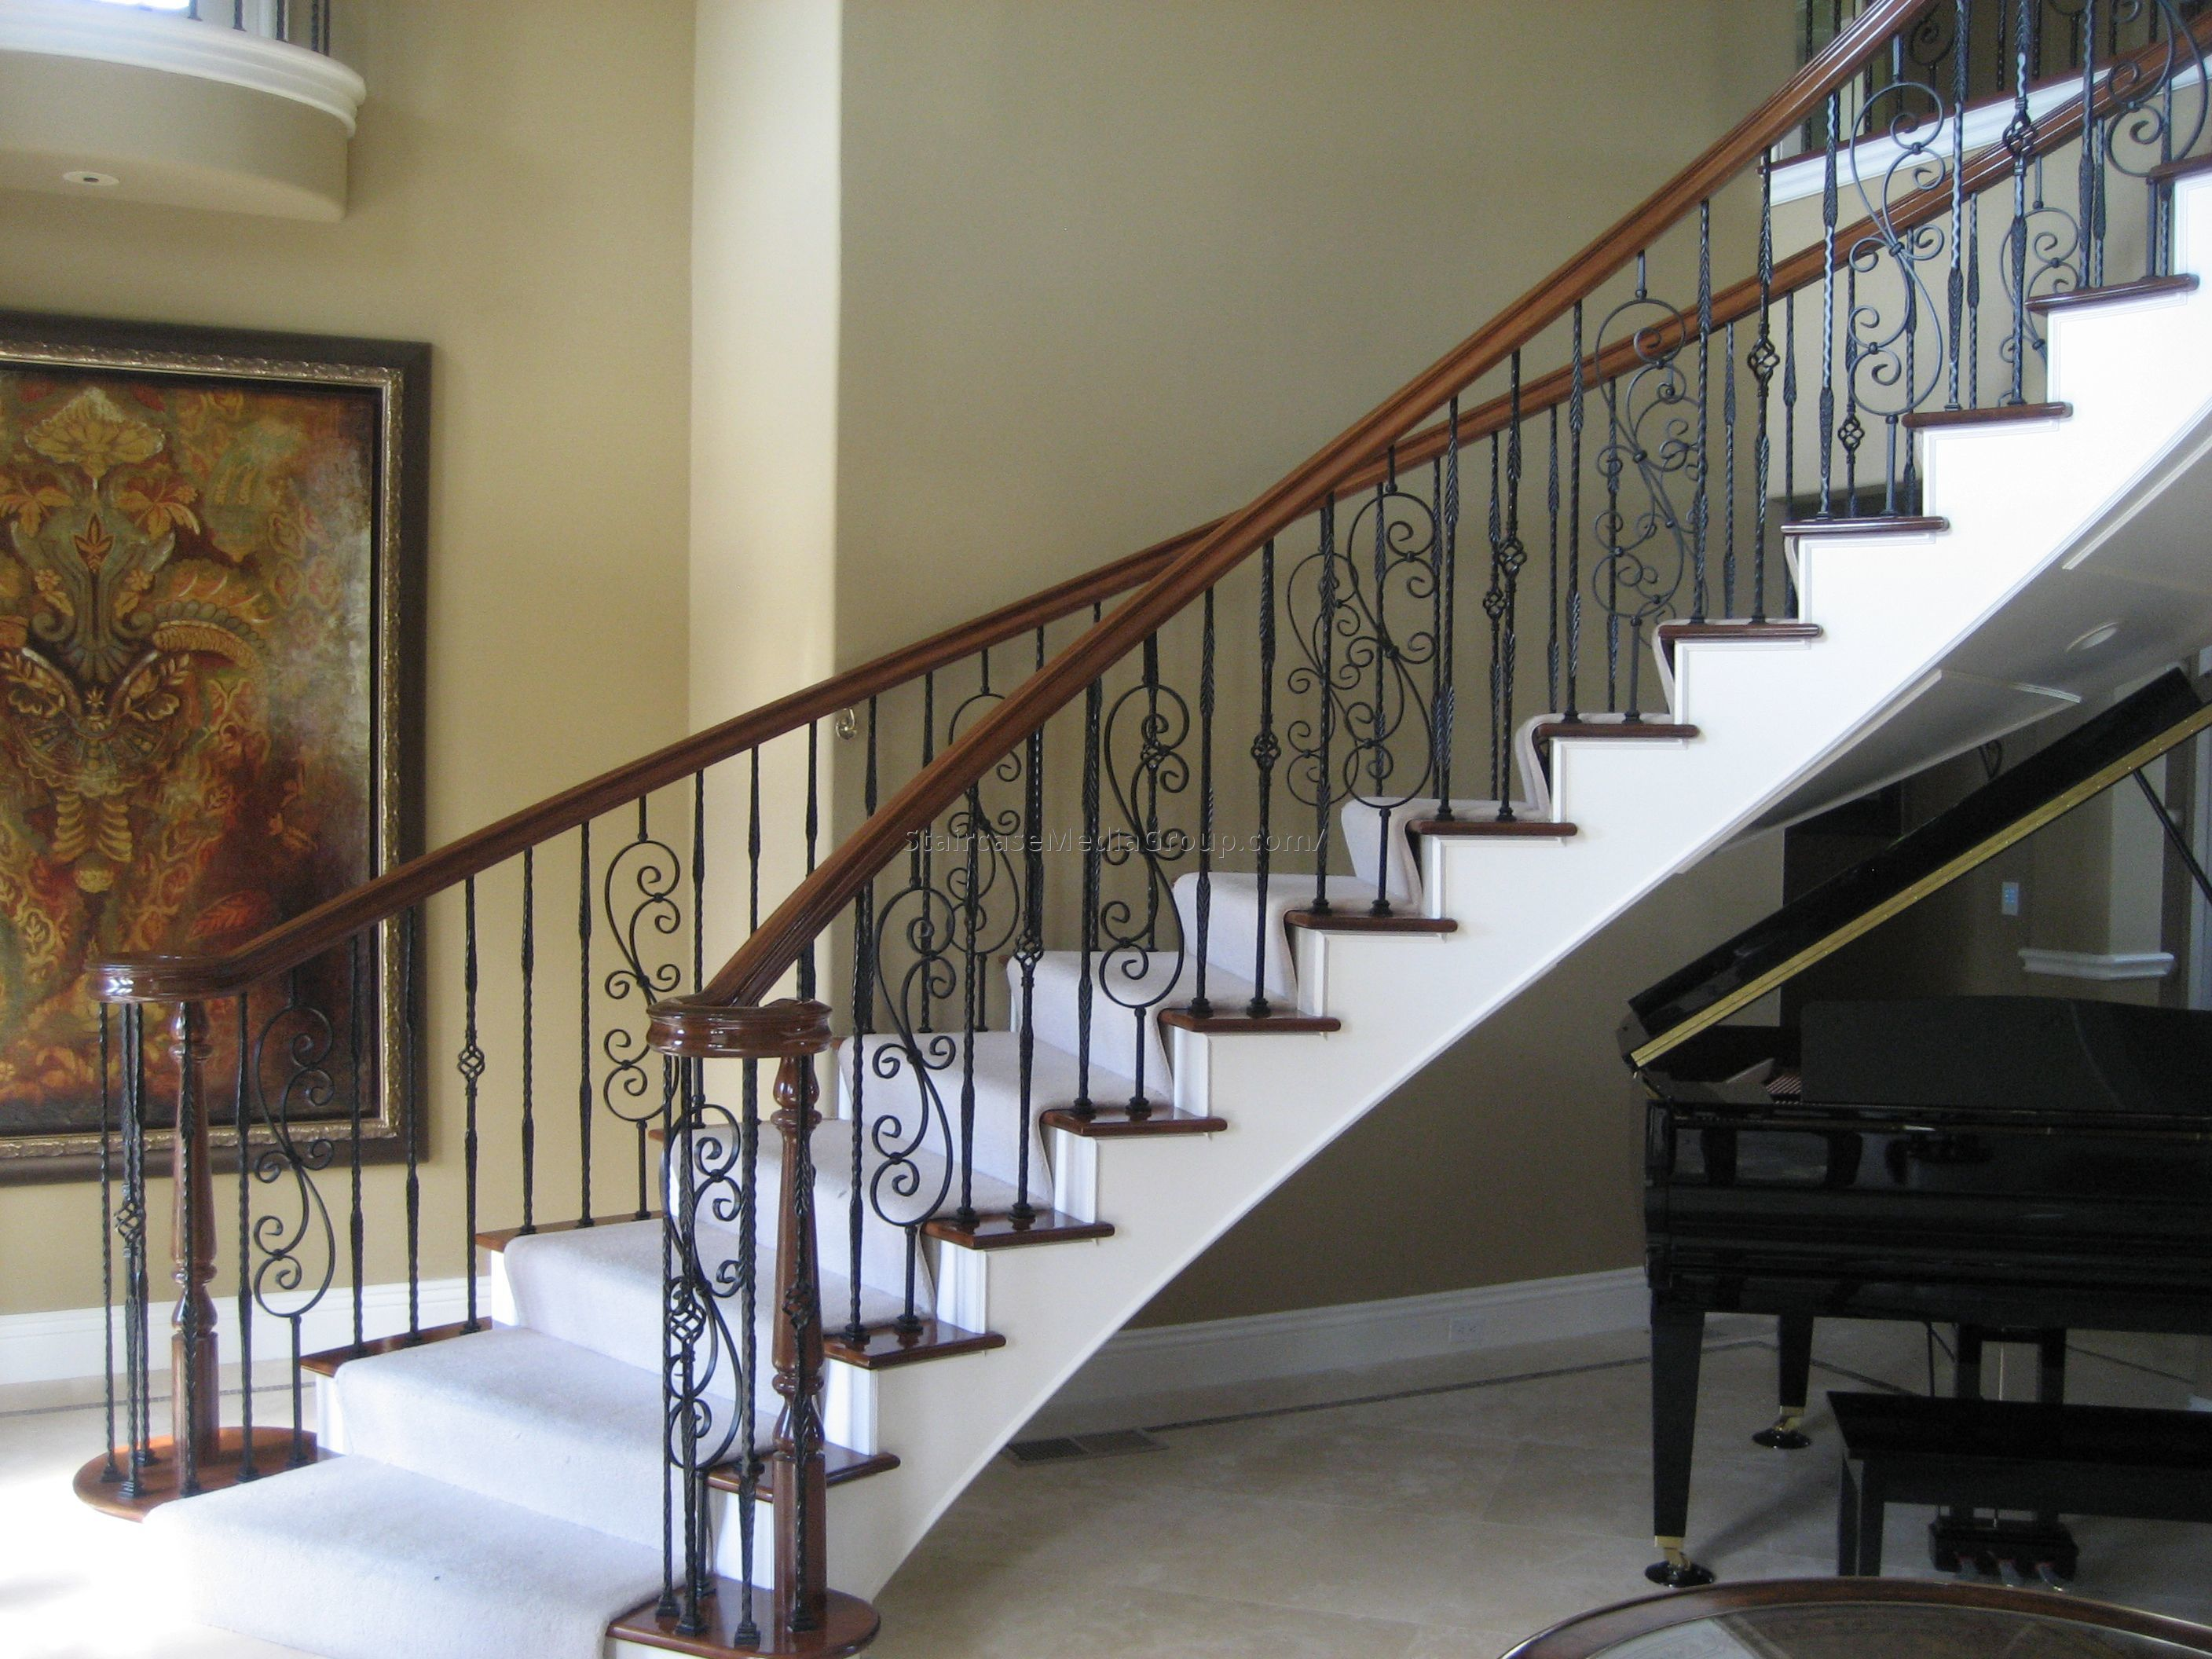 Staircase handrail design 2816 2112 spindle and handrail designs pinterest for Leroy merlin corrimano